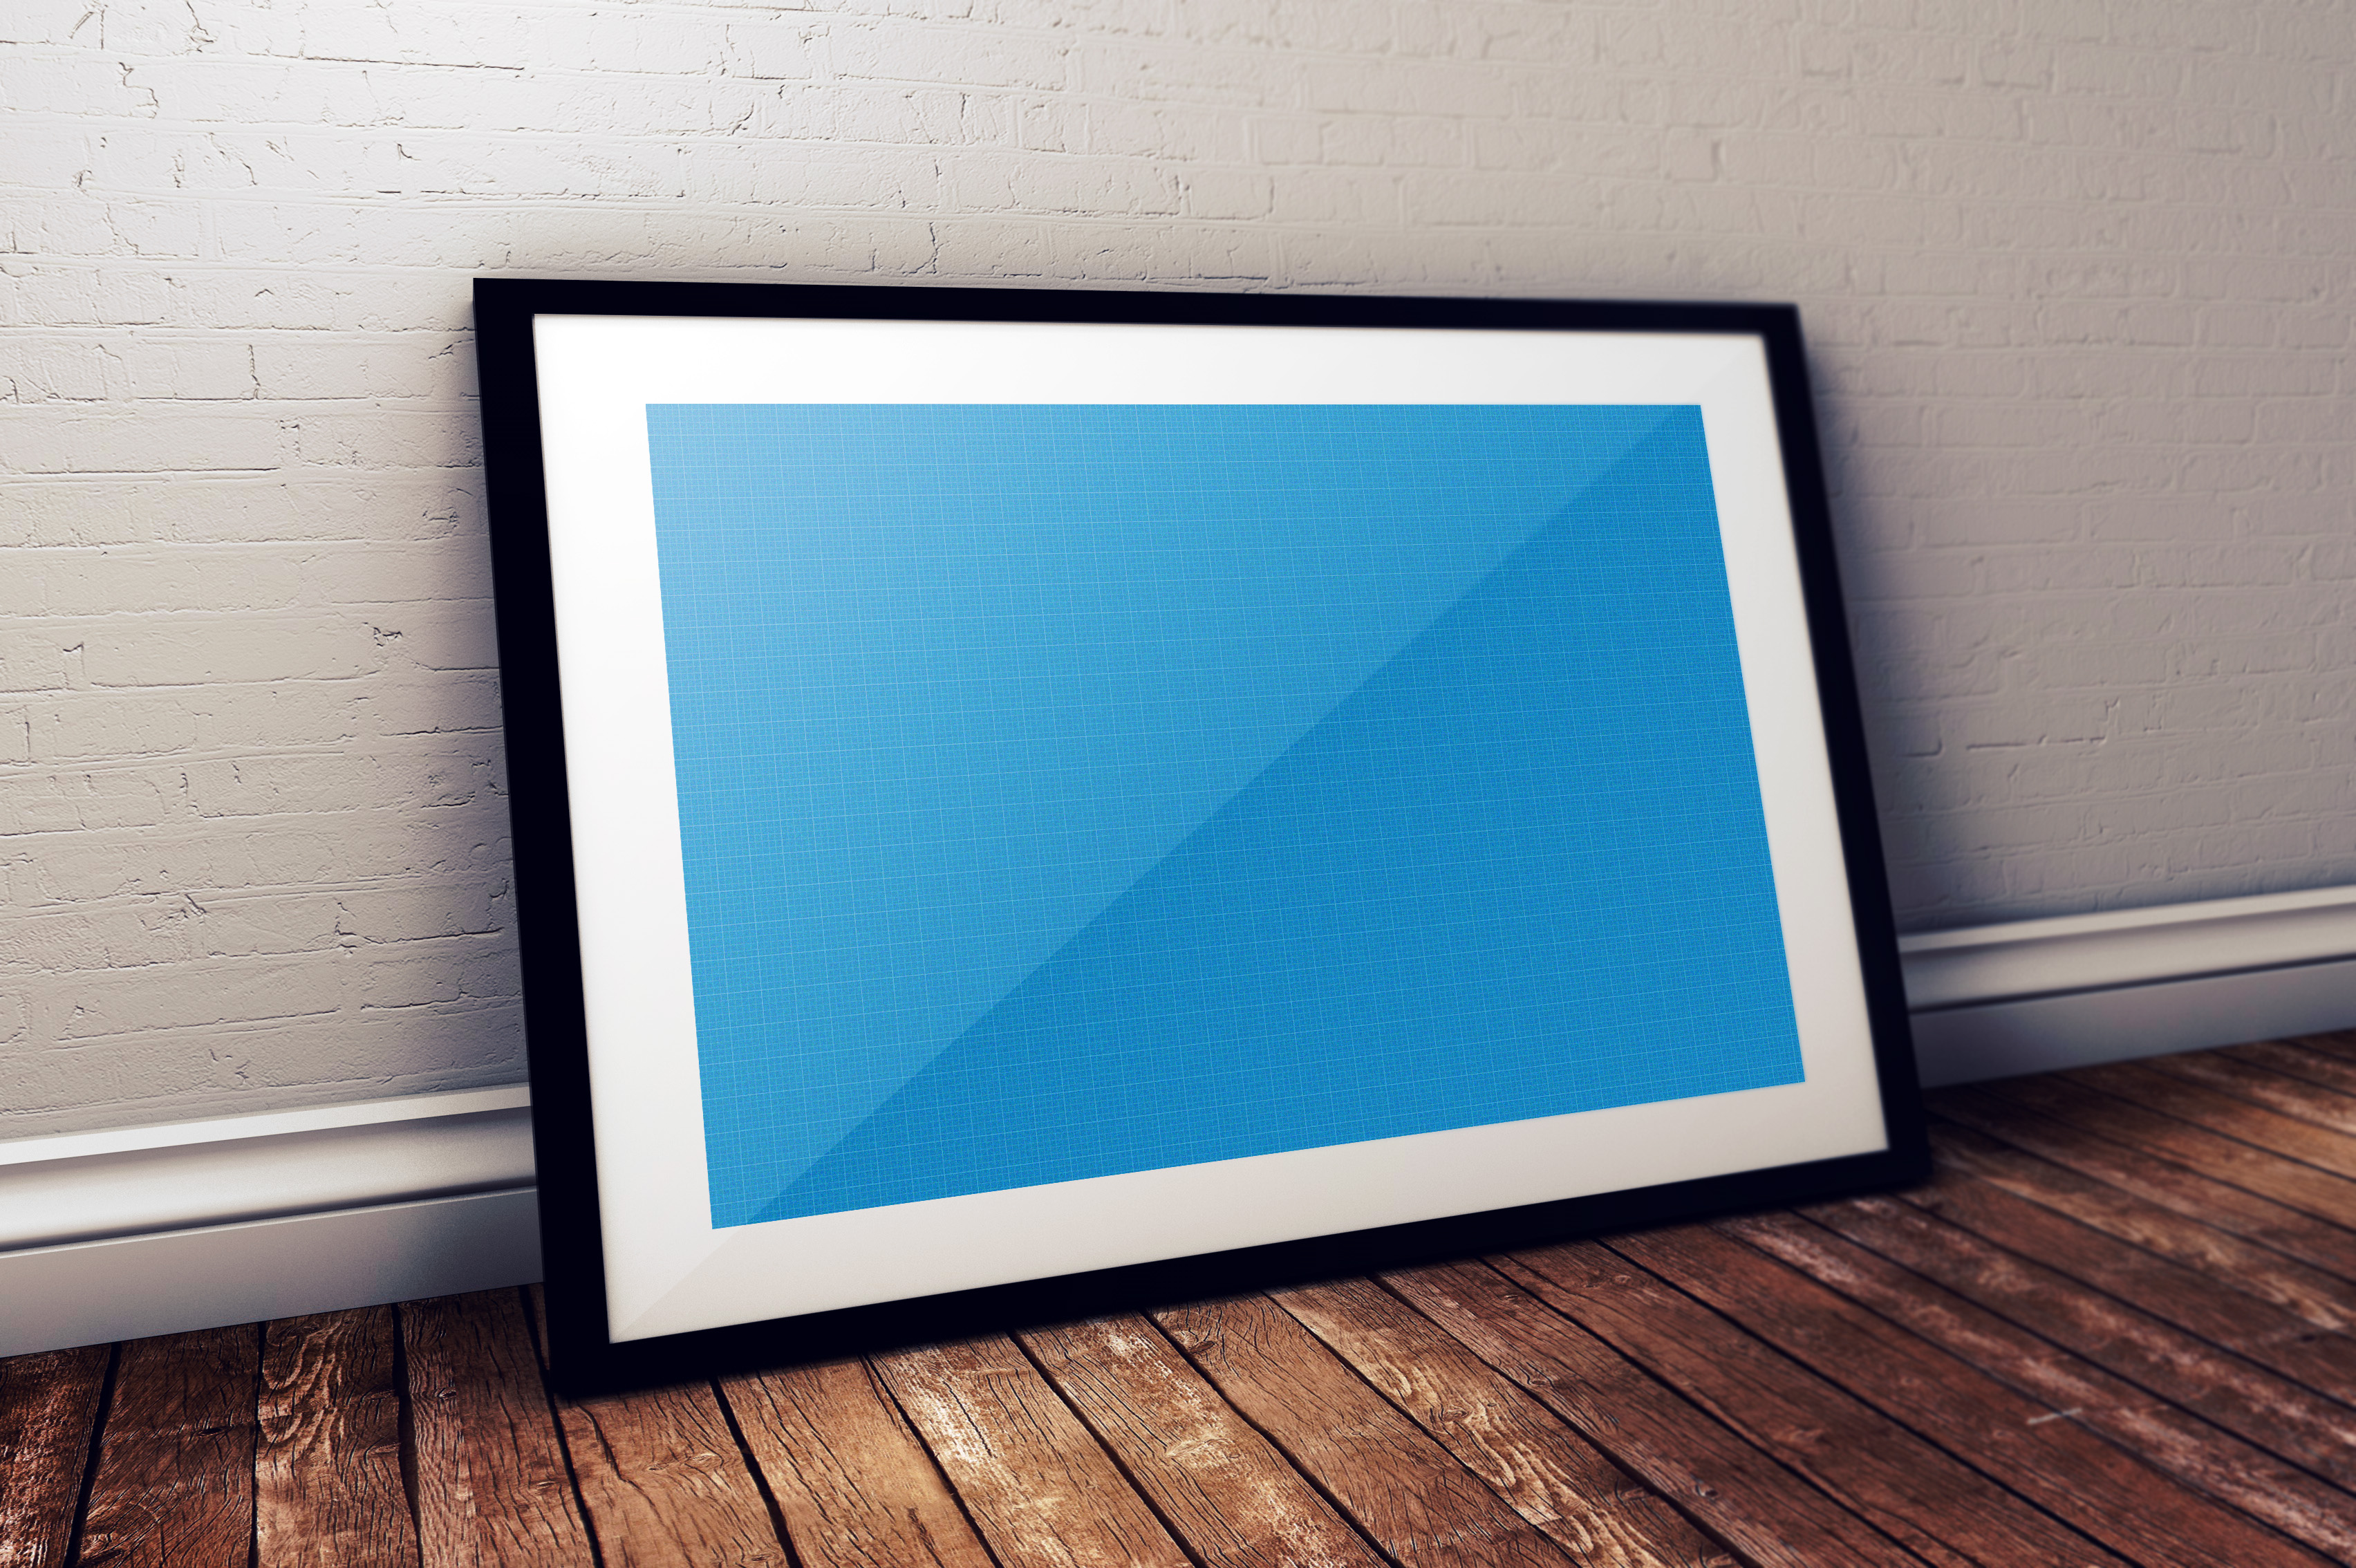 60+ Free Realistic Poster & Frame Mock-ups For Graphic Designers ...